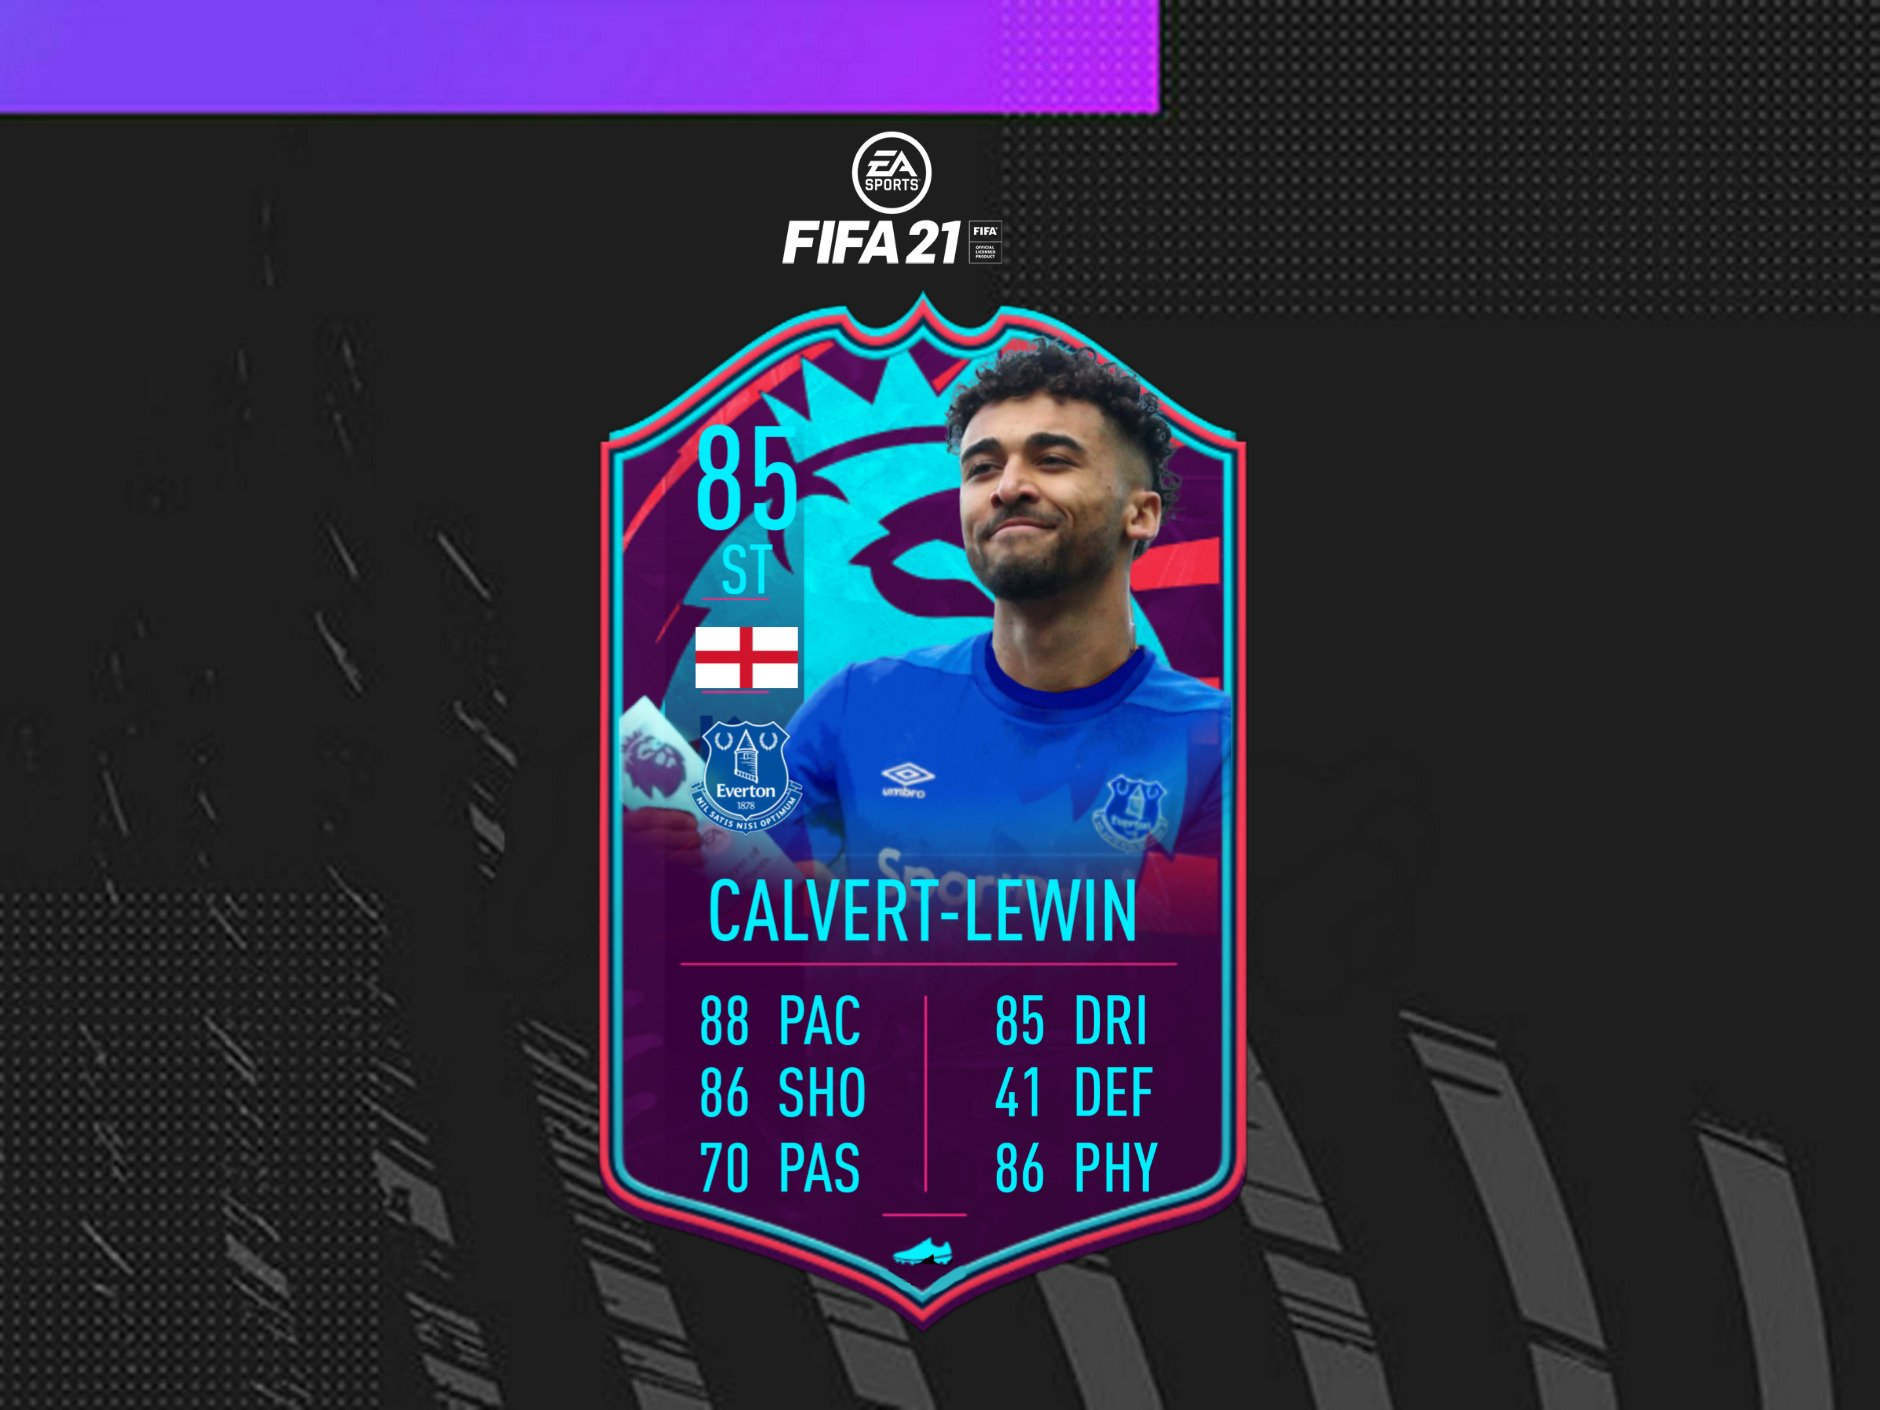 Should You Do The Calvert-Lewin POTM SBC In FIFA 21? Premier League Striker Is The First Big SBC In FUT